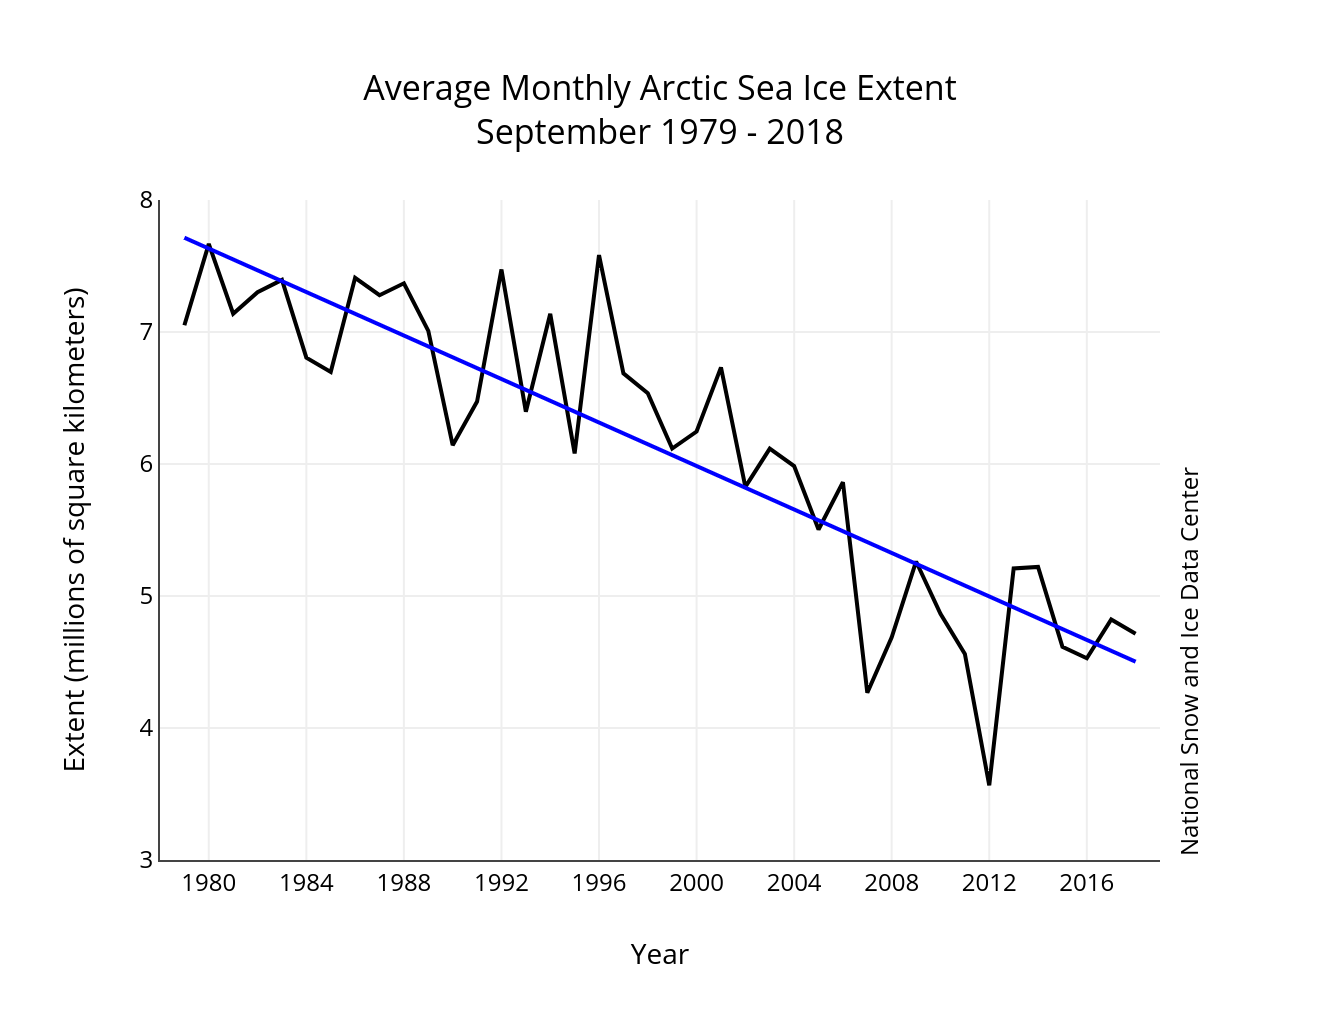 Monthly September ice extent for 1979 to 2018 shows a decline of 12.8 percent per decade.